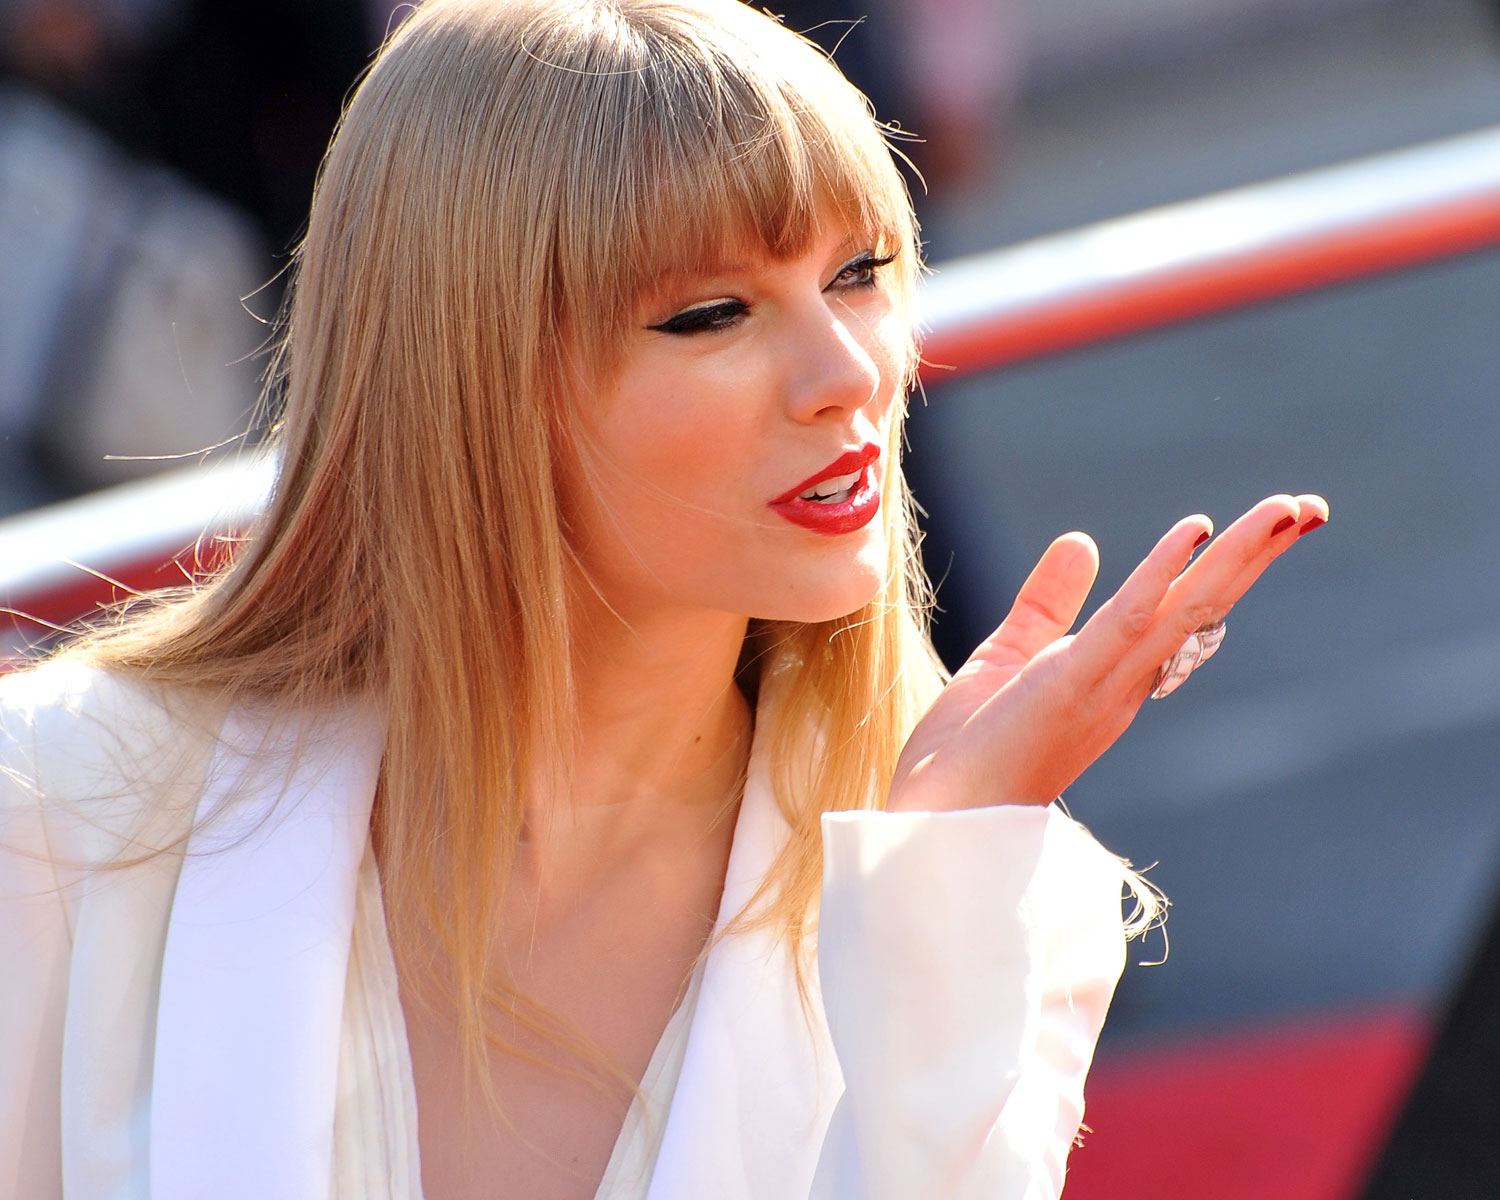 Taylor Swift Sent A Sweet Congratulatory Gift To A